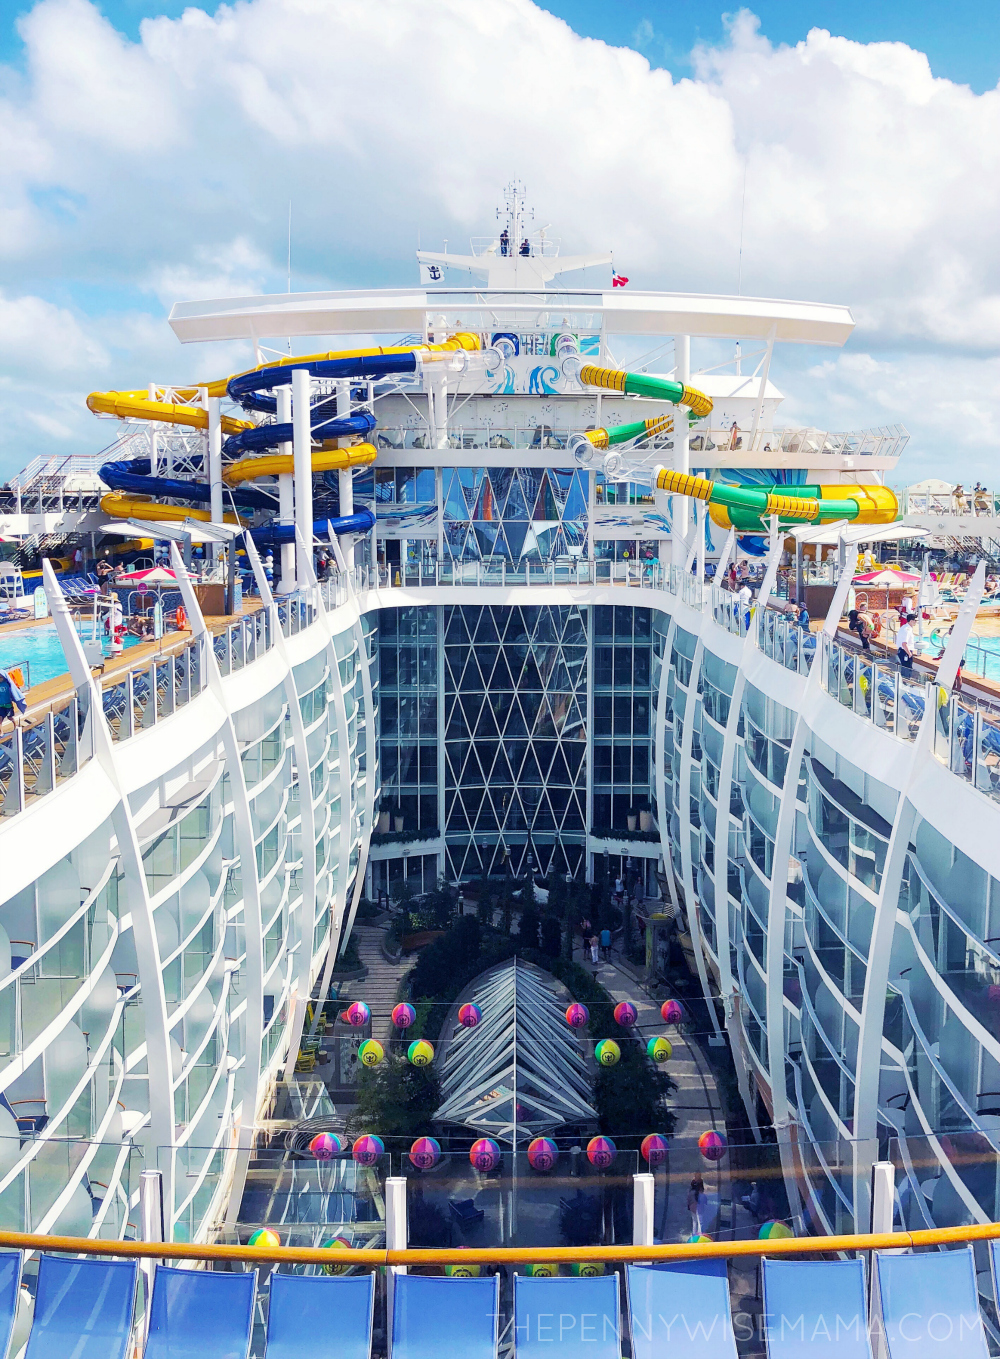 Royal Caribbean Symphony of the Seas Waterslides